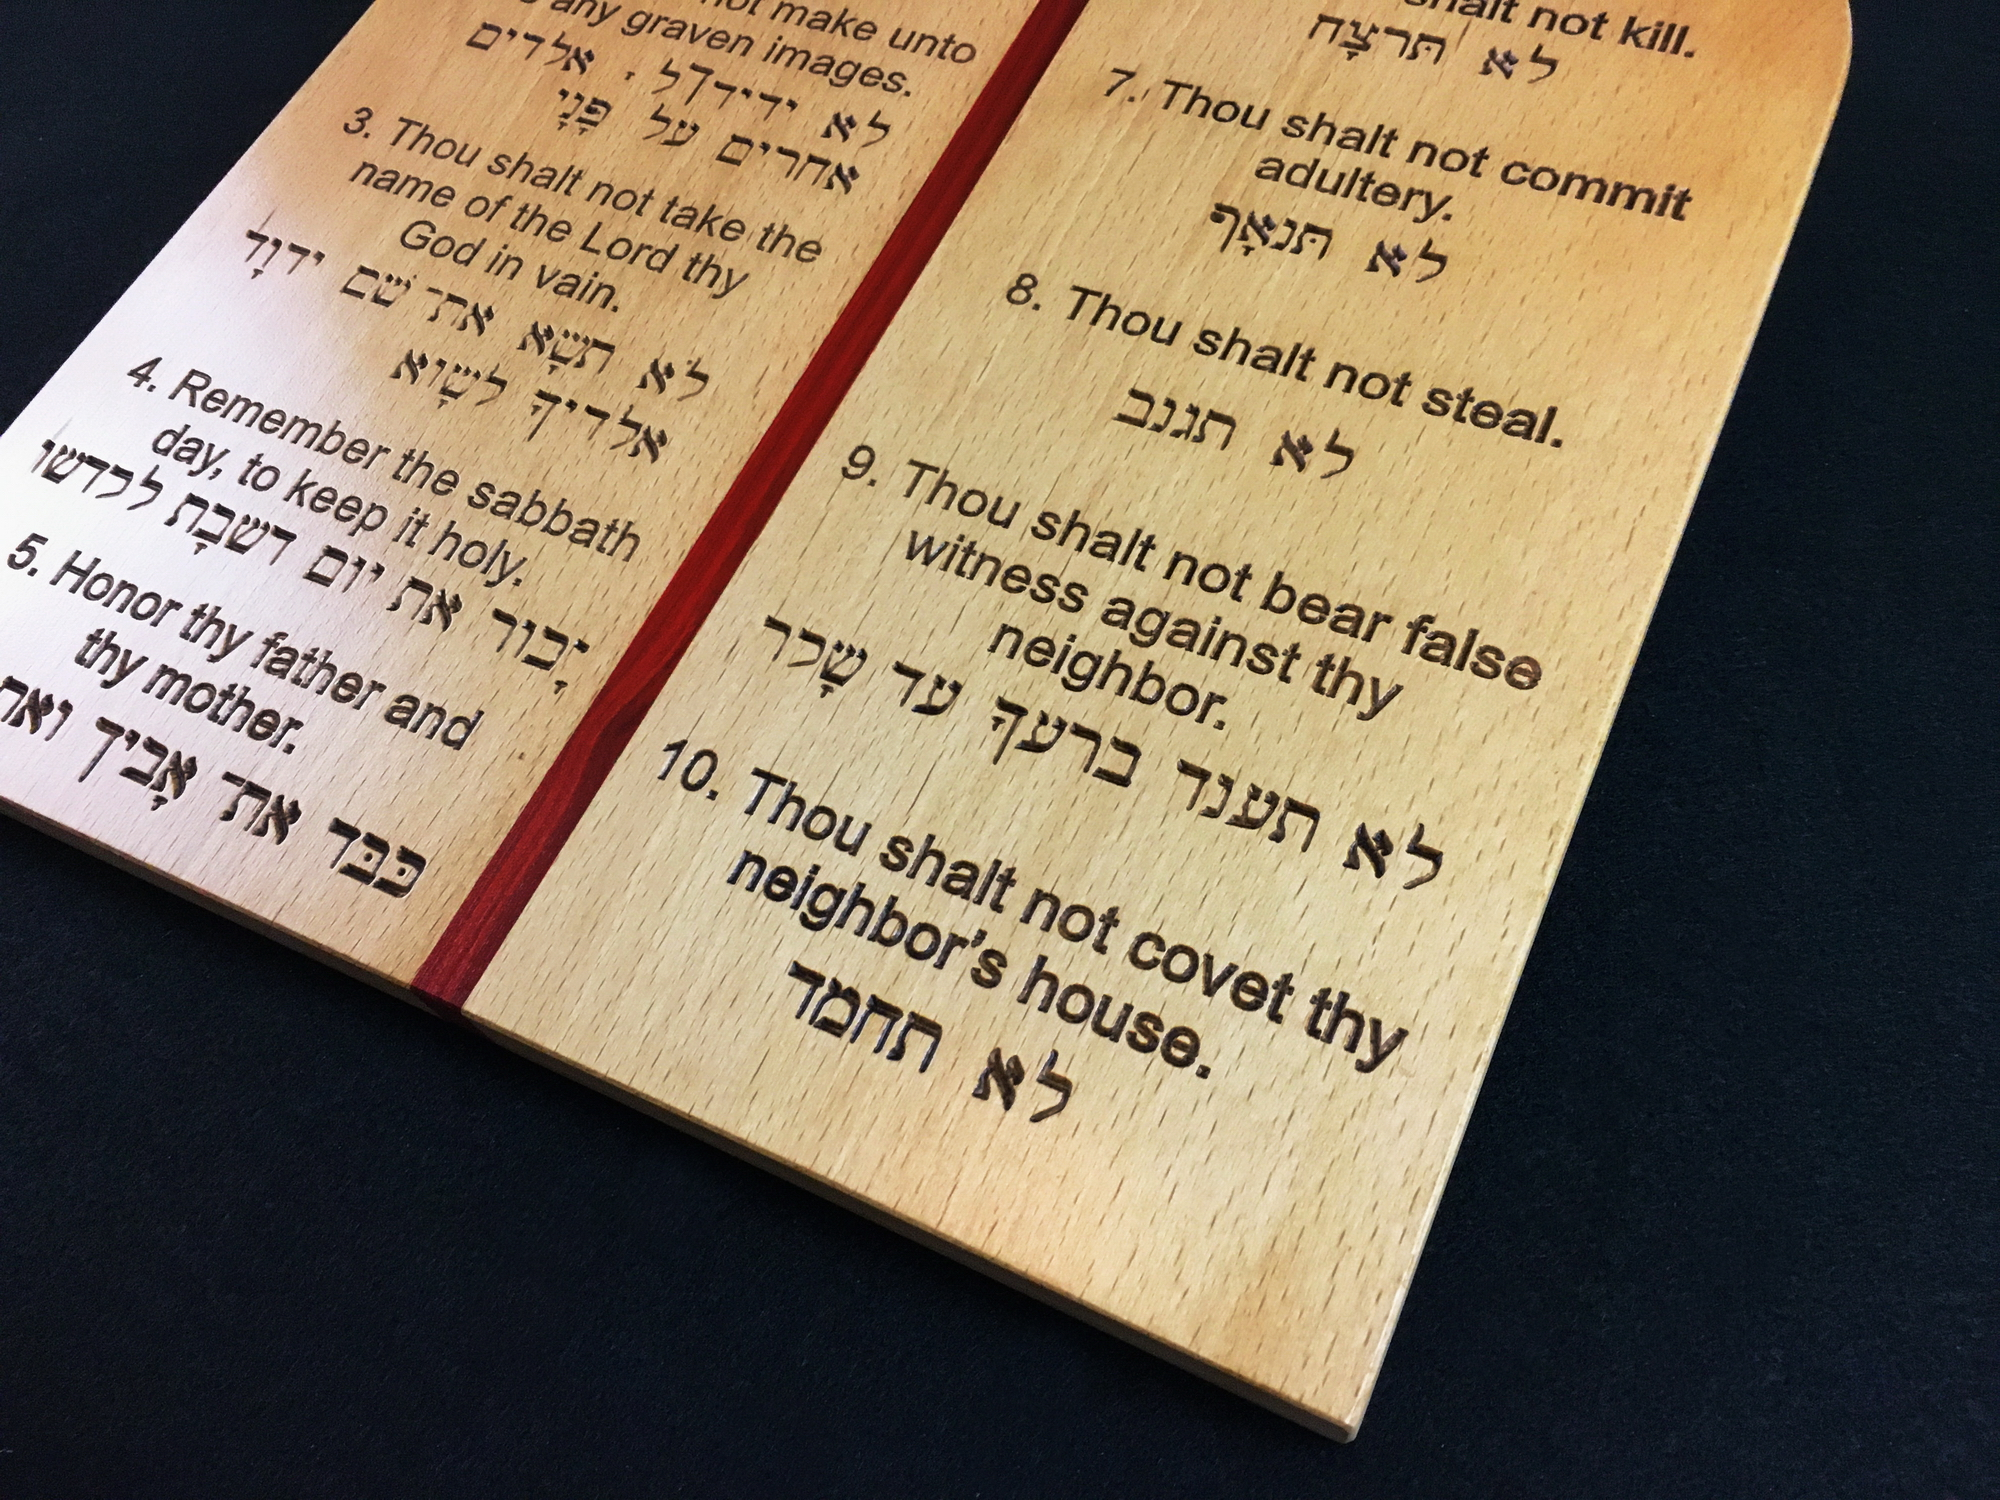 10 Commandments in English and Hebrew-002-10-commandments-english-hebrew-beech-red-heart.jpg